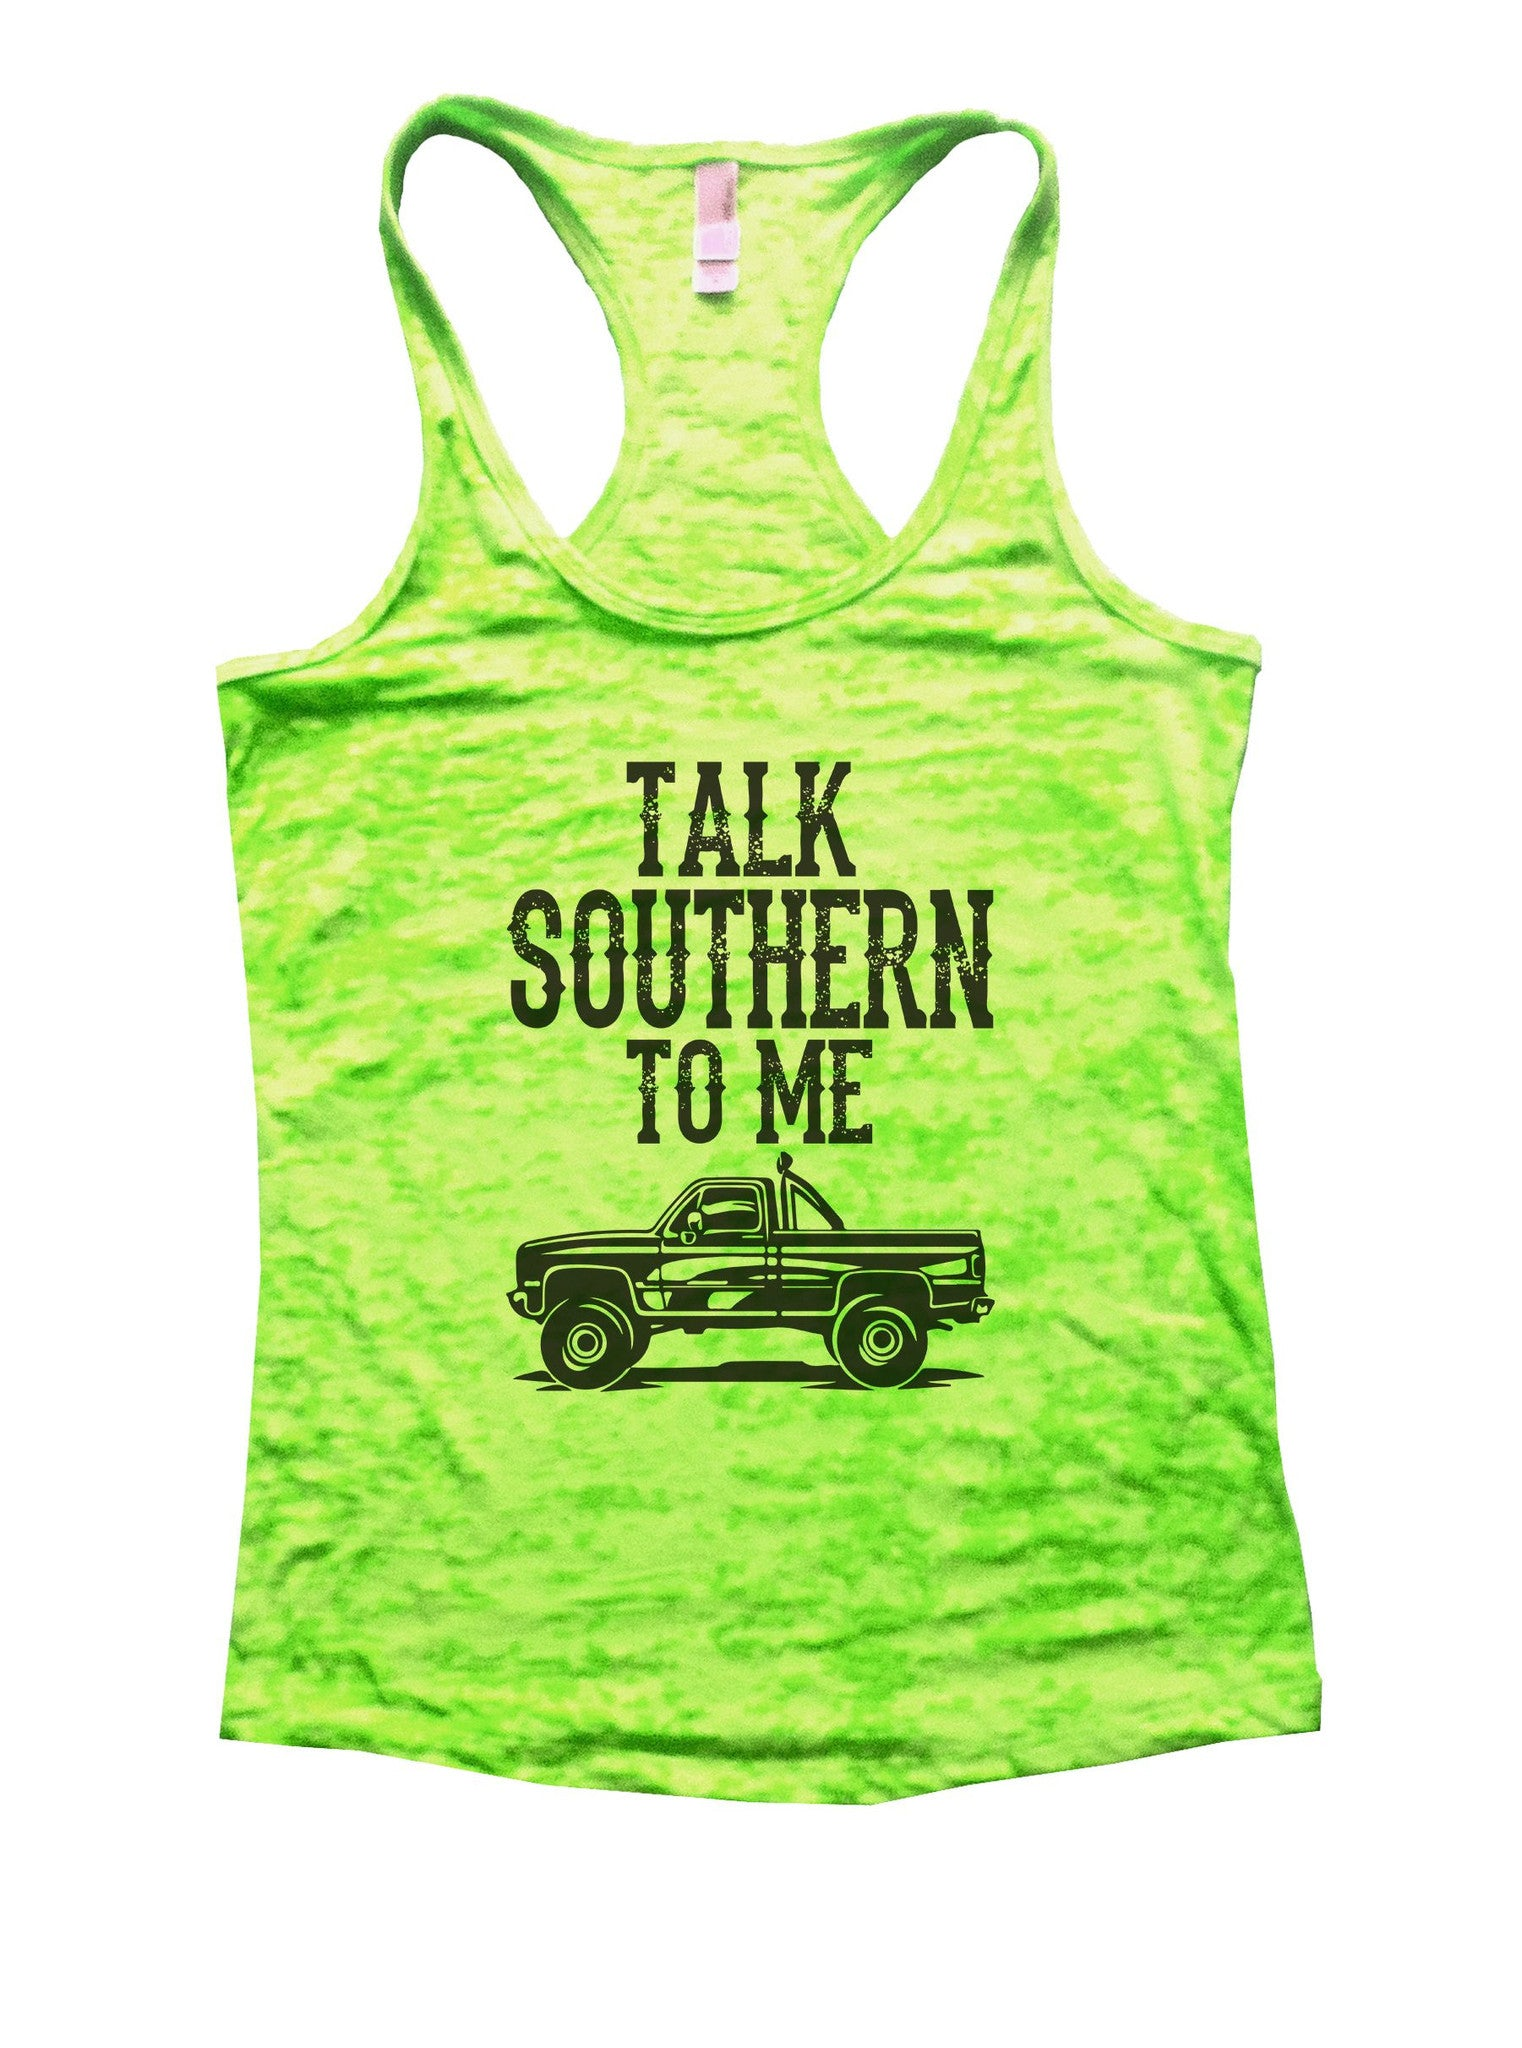 Talk Southern To Me Burnout Tank Top By BurnoutTankTops.com - 1010 - Funny Shirts Tank Tops Burnouts and Triblends  - 1